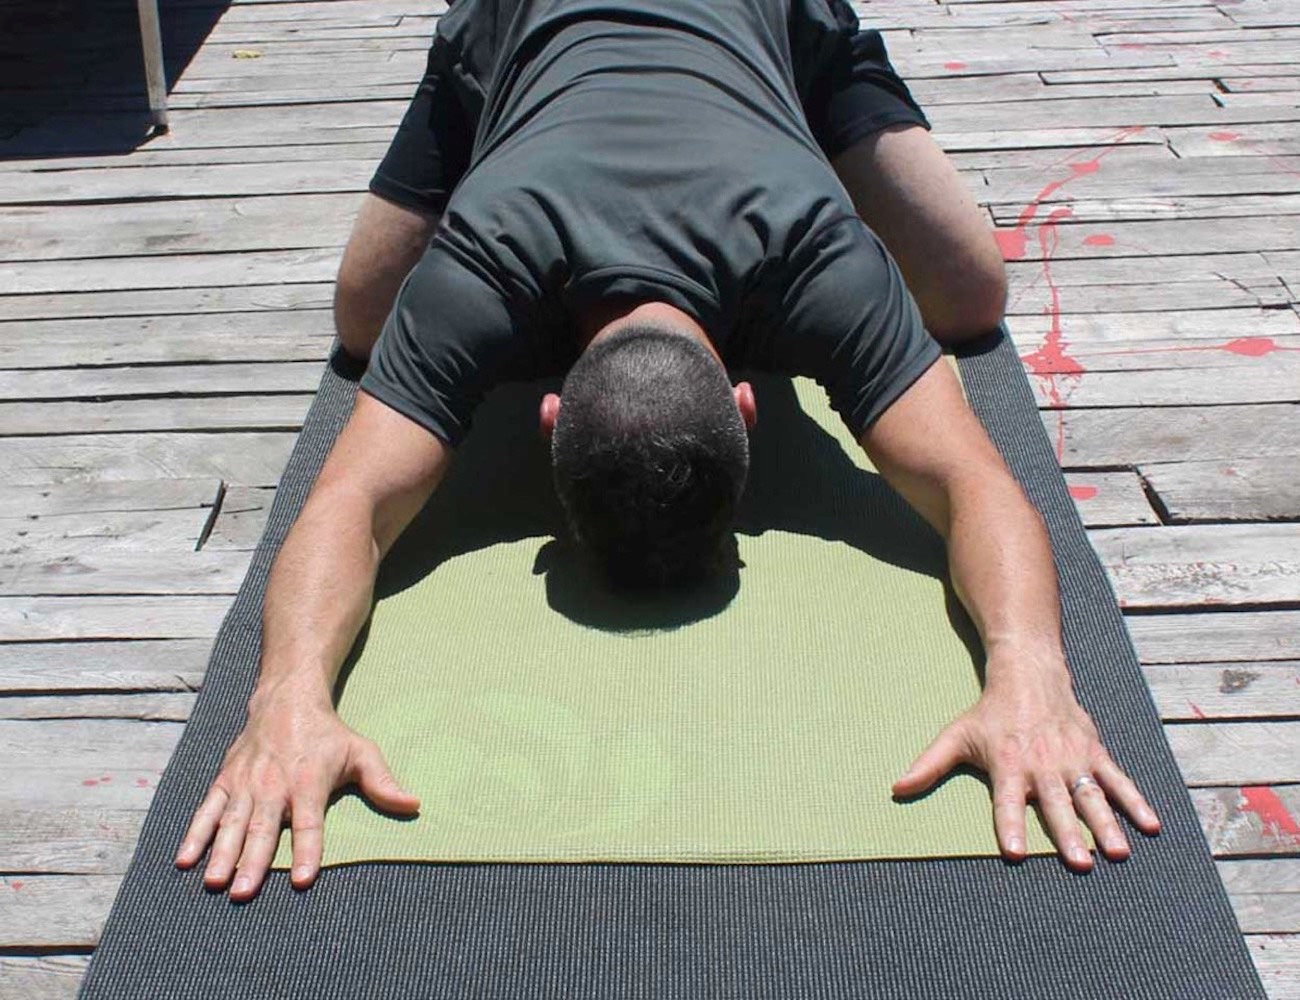 Yeoman Gear – Yoga Gear for Men and People Who Are Not Tiny